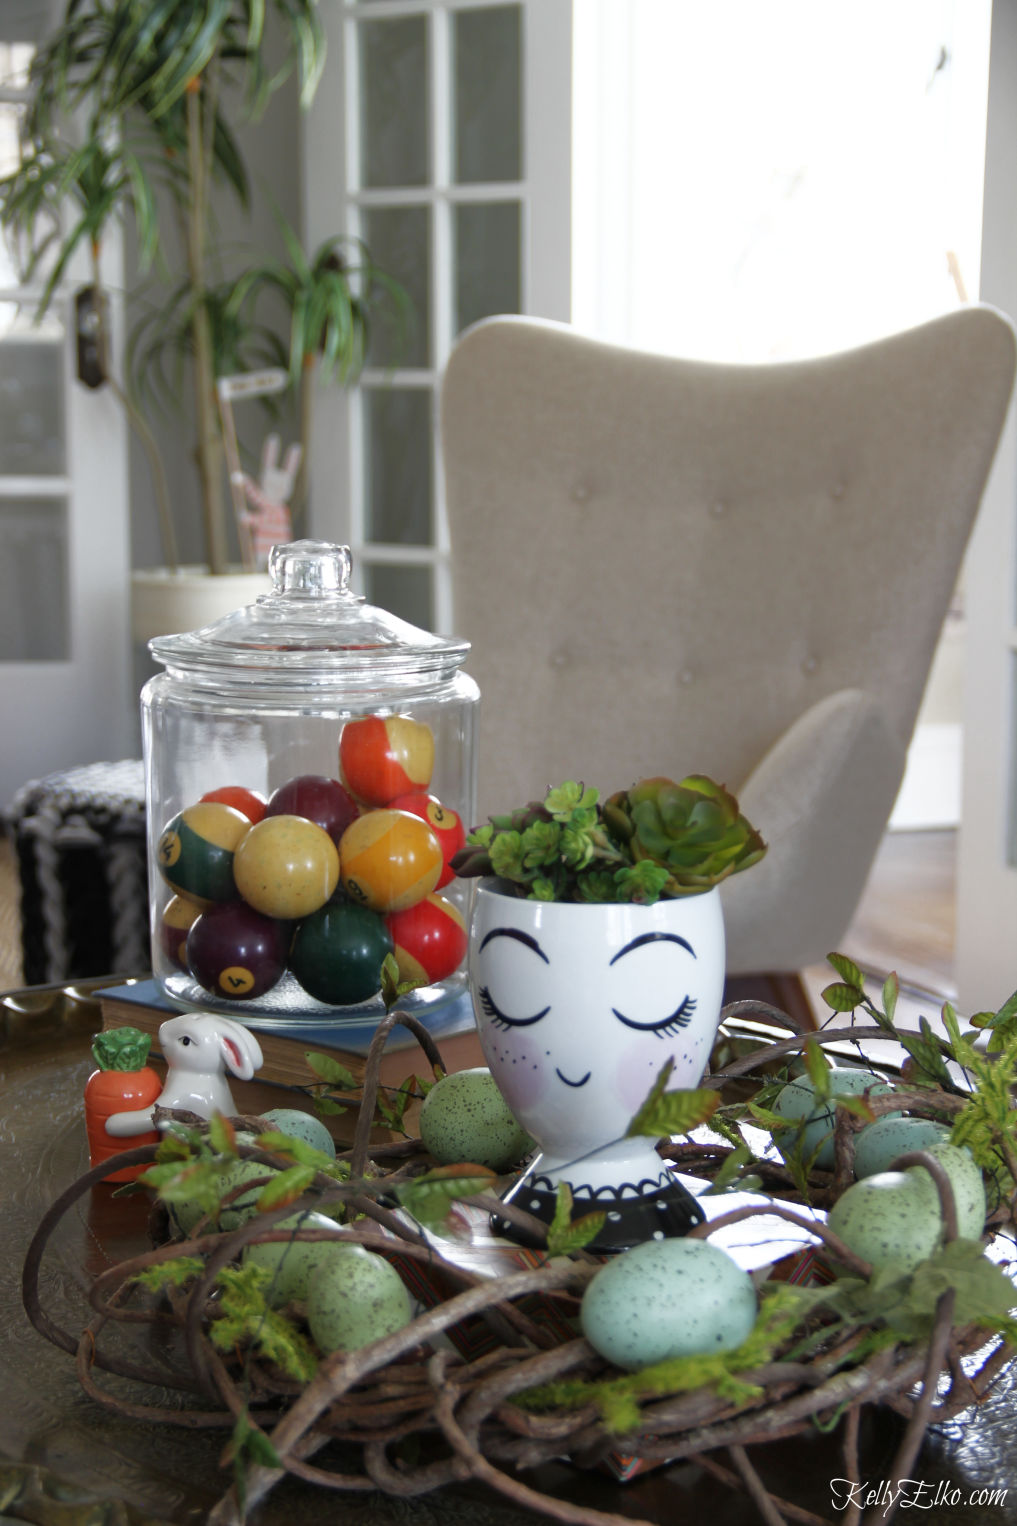 Love this fun spring coffee table display kellyelko.com #springdecor #easterdecor #vintagedecor #easterdecor #vignettes